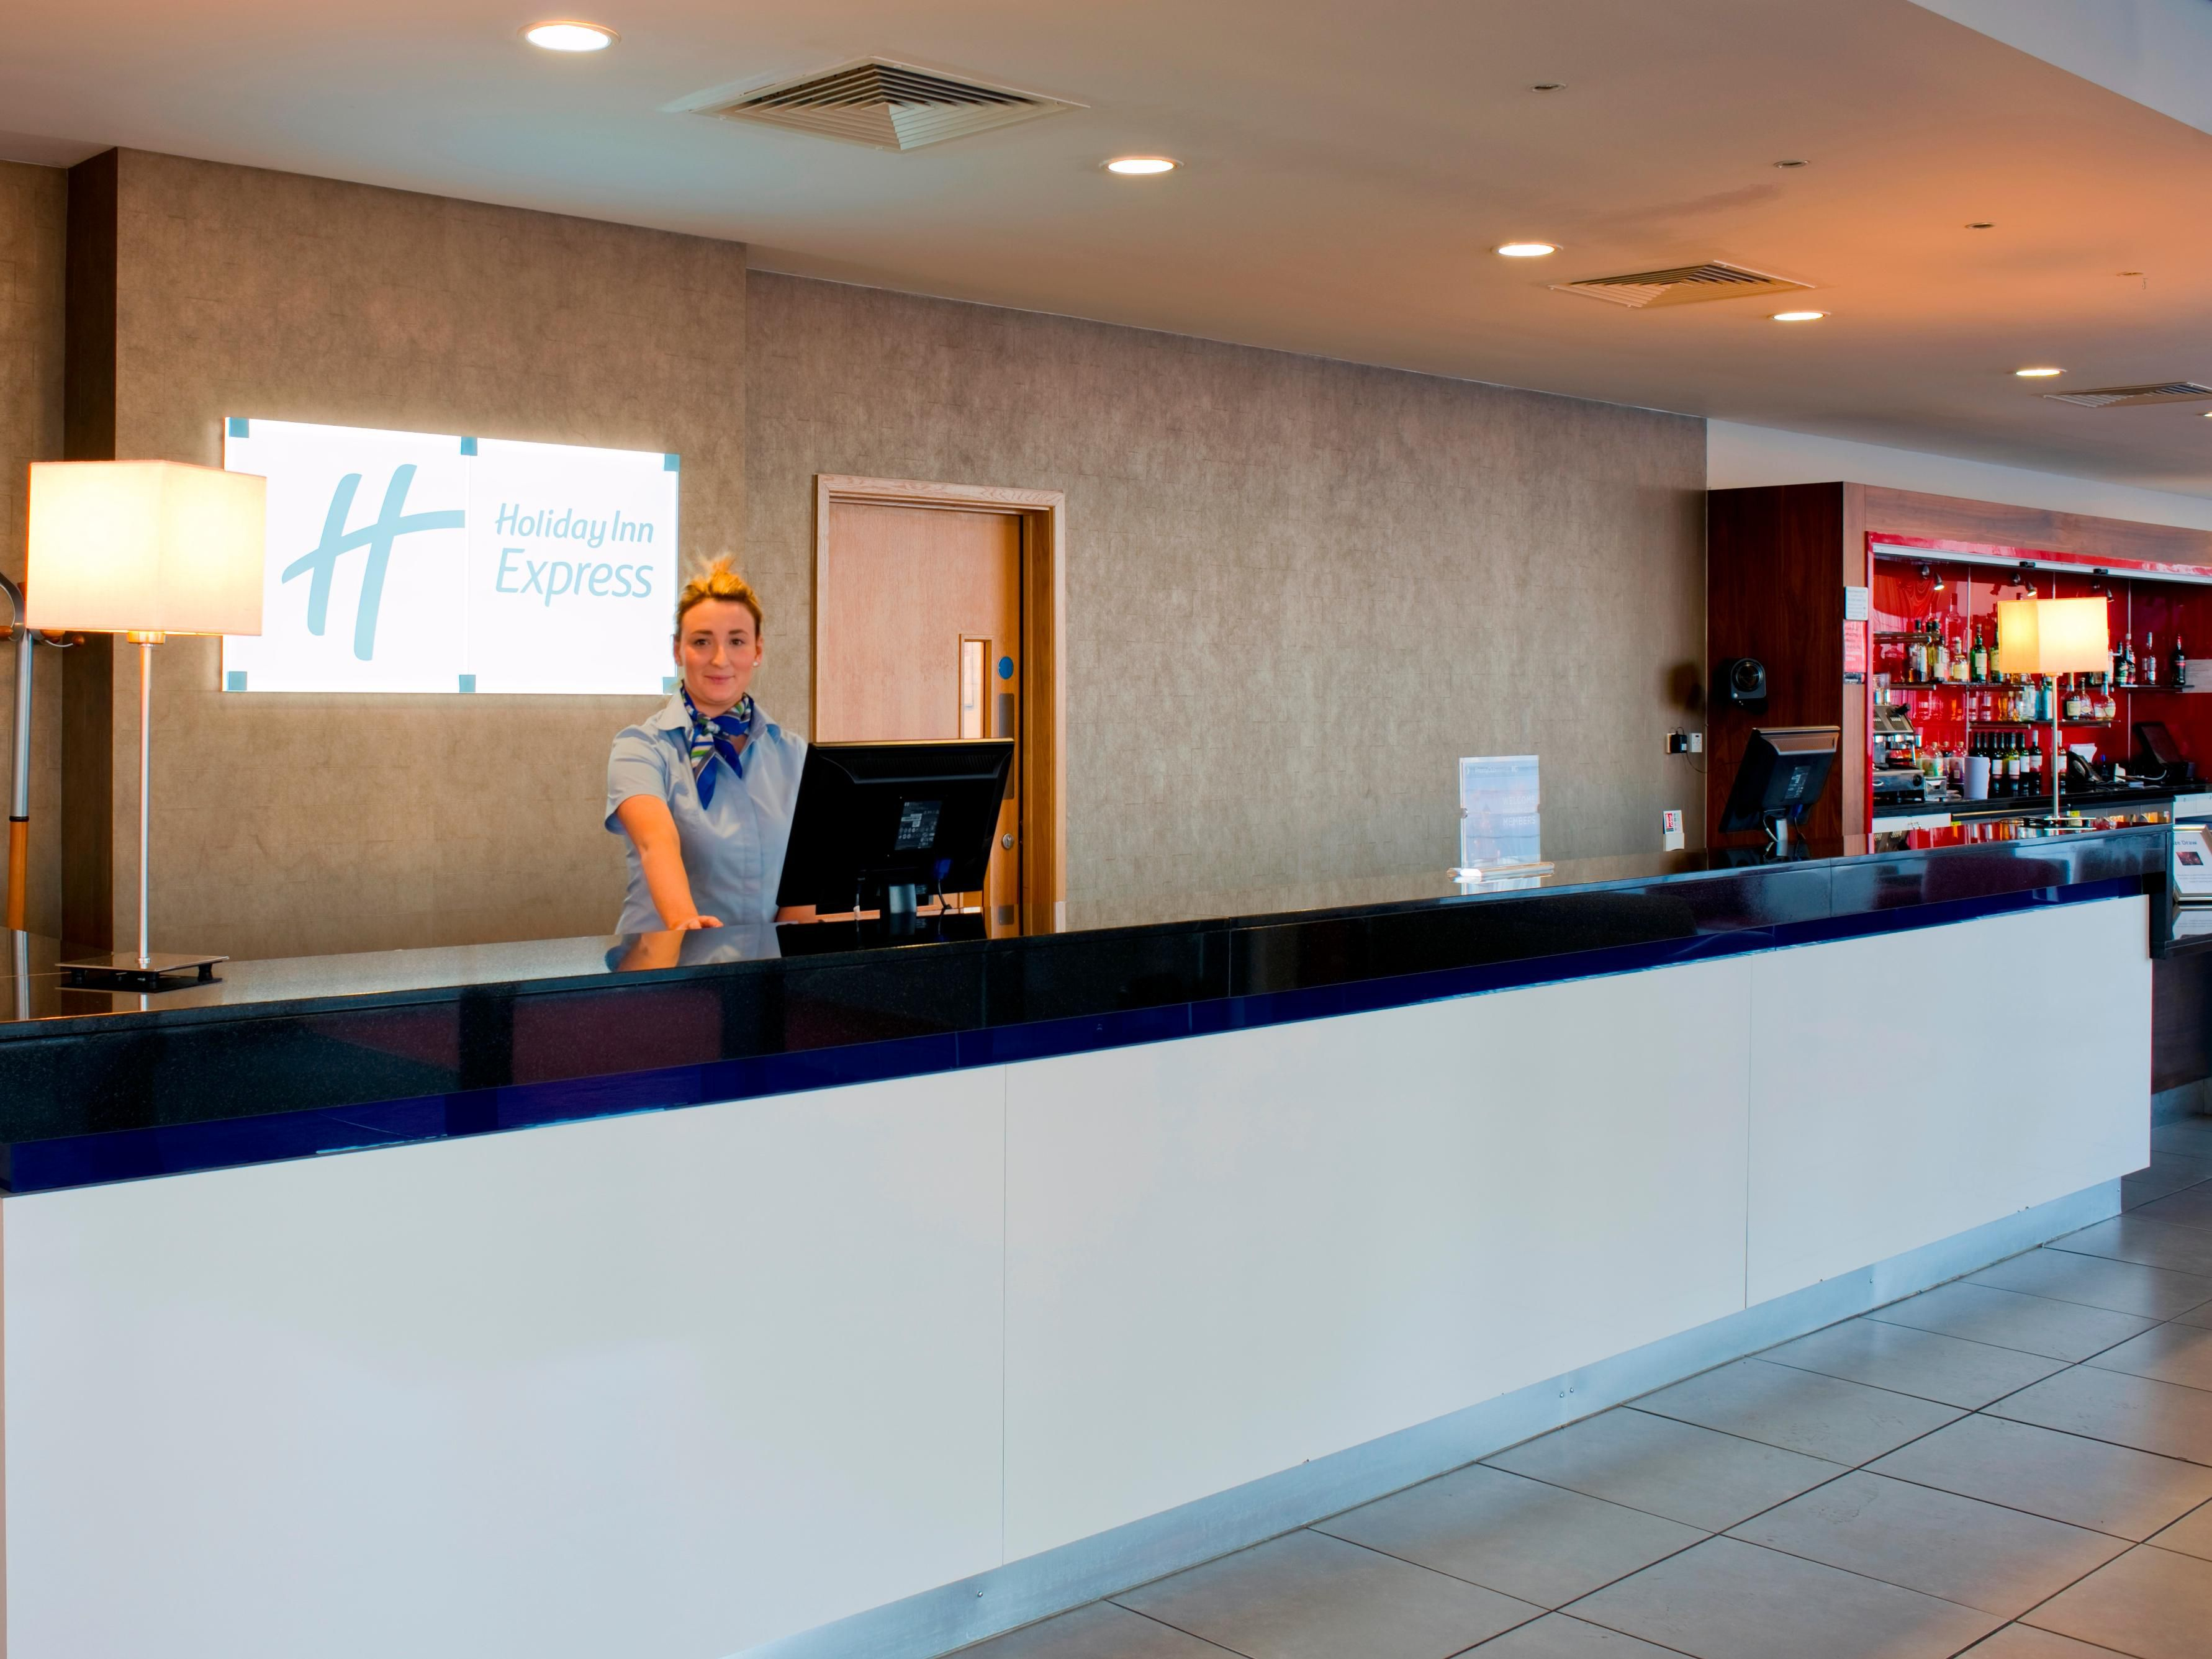 Our Welcoming front desk team are available 24 hours a day